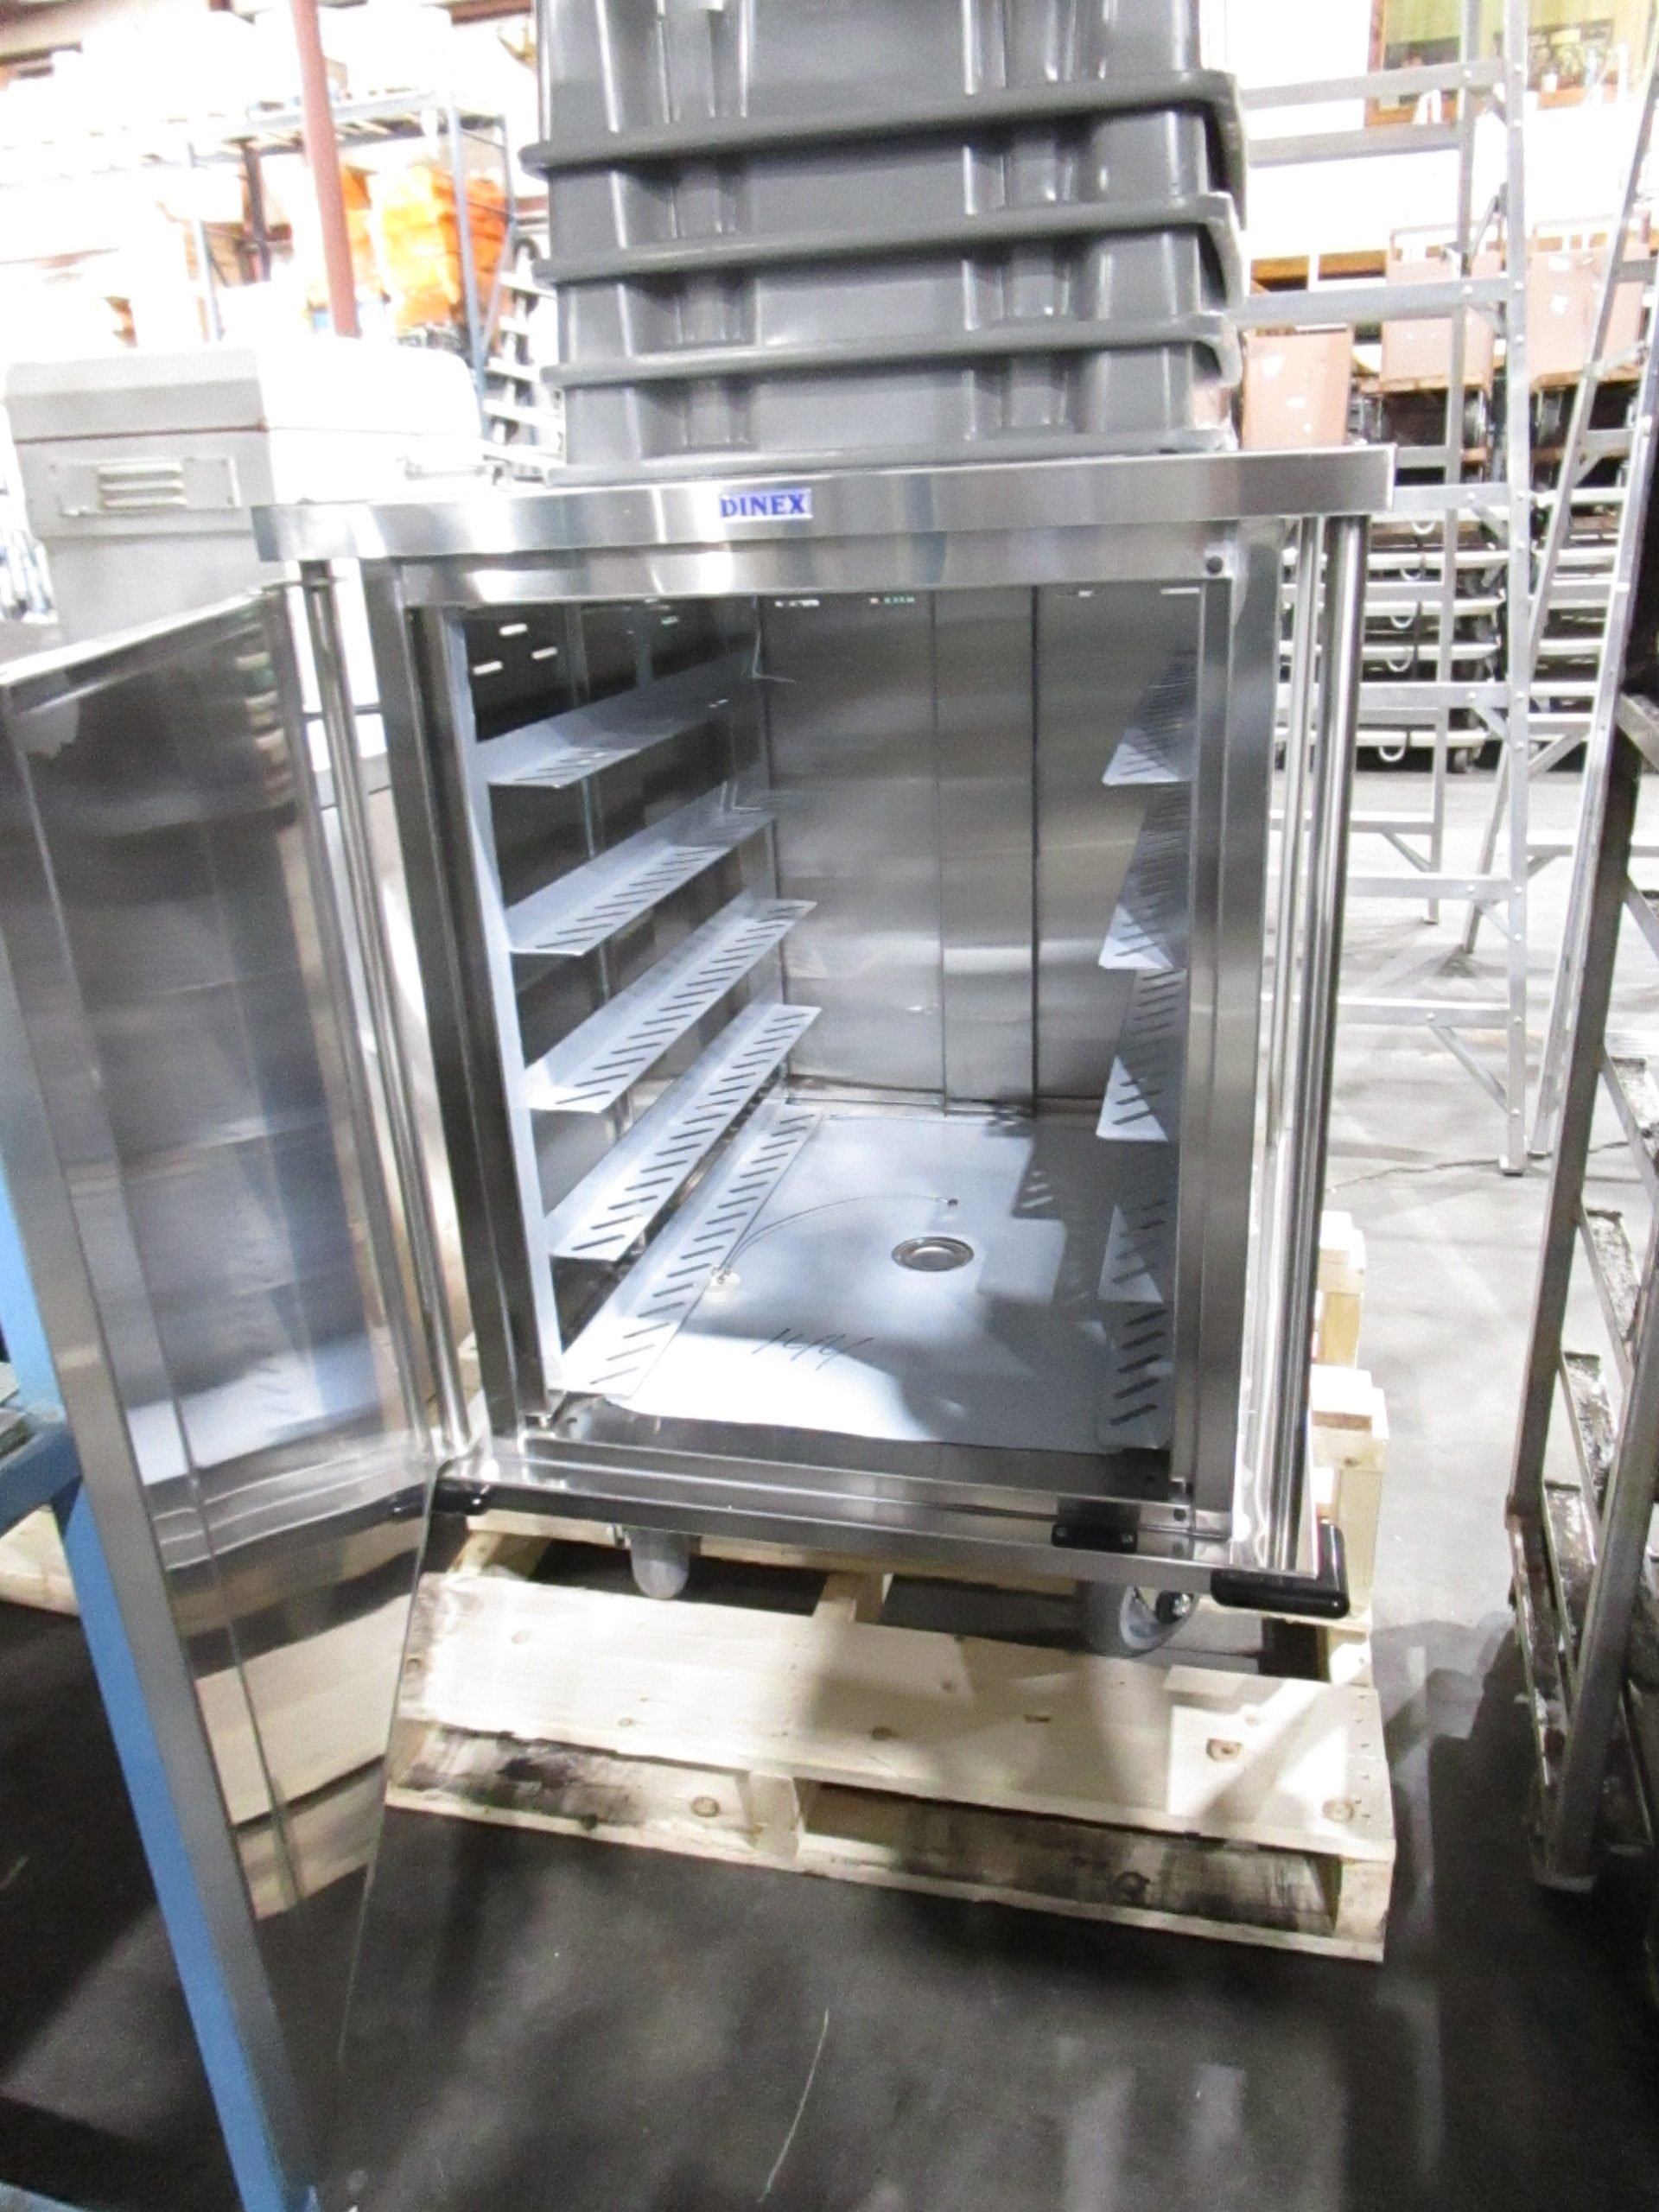 DINEX TQ QUIET CARTS MEAL DELIVERY CART COMMERCIAL 10 TRAY HOLDING CABINET